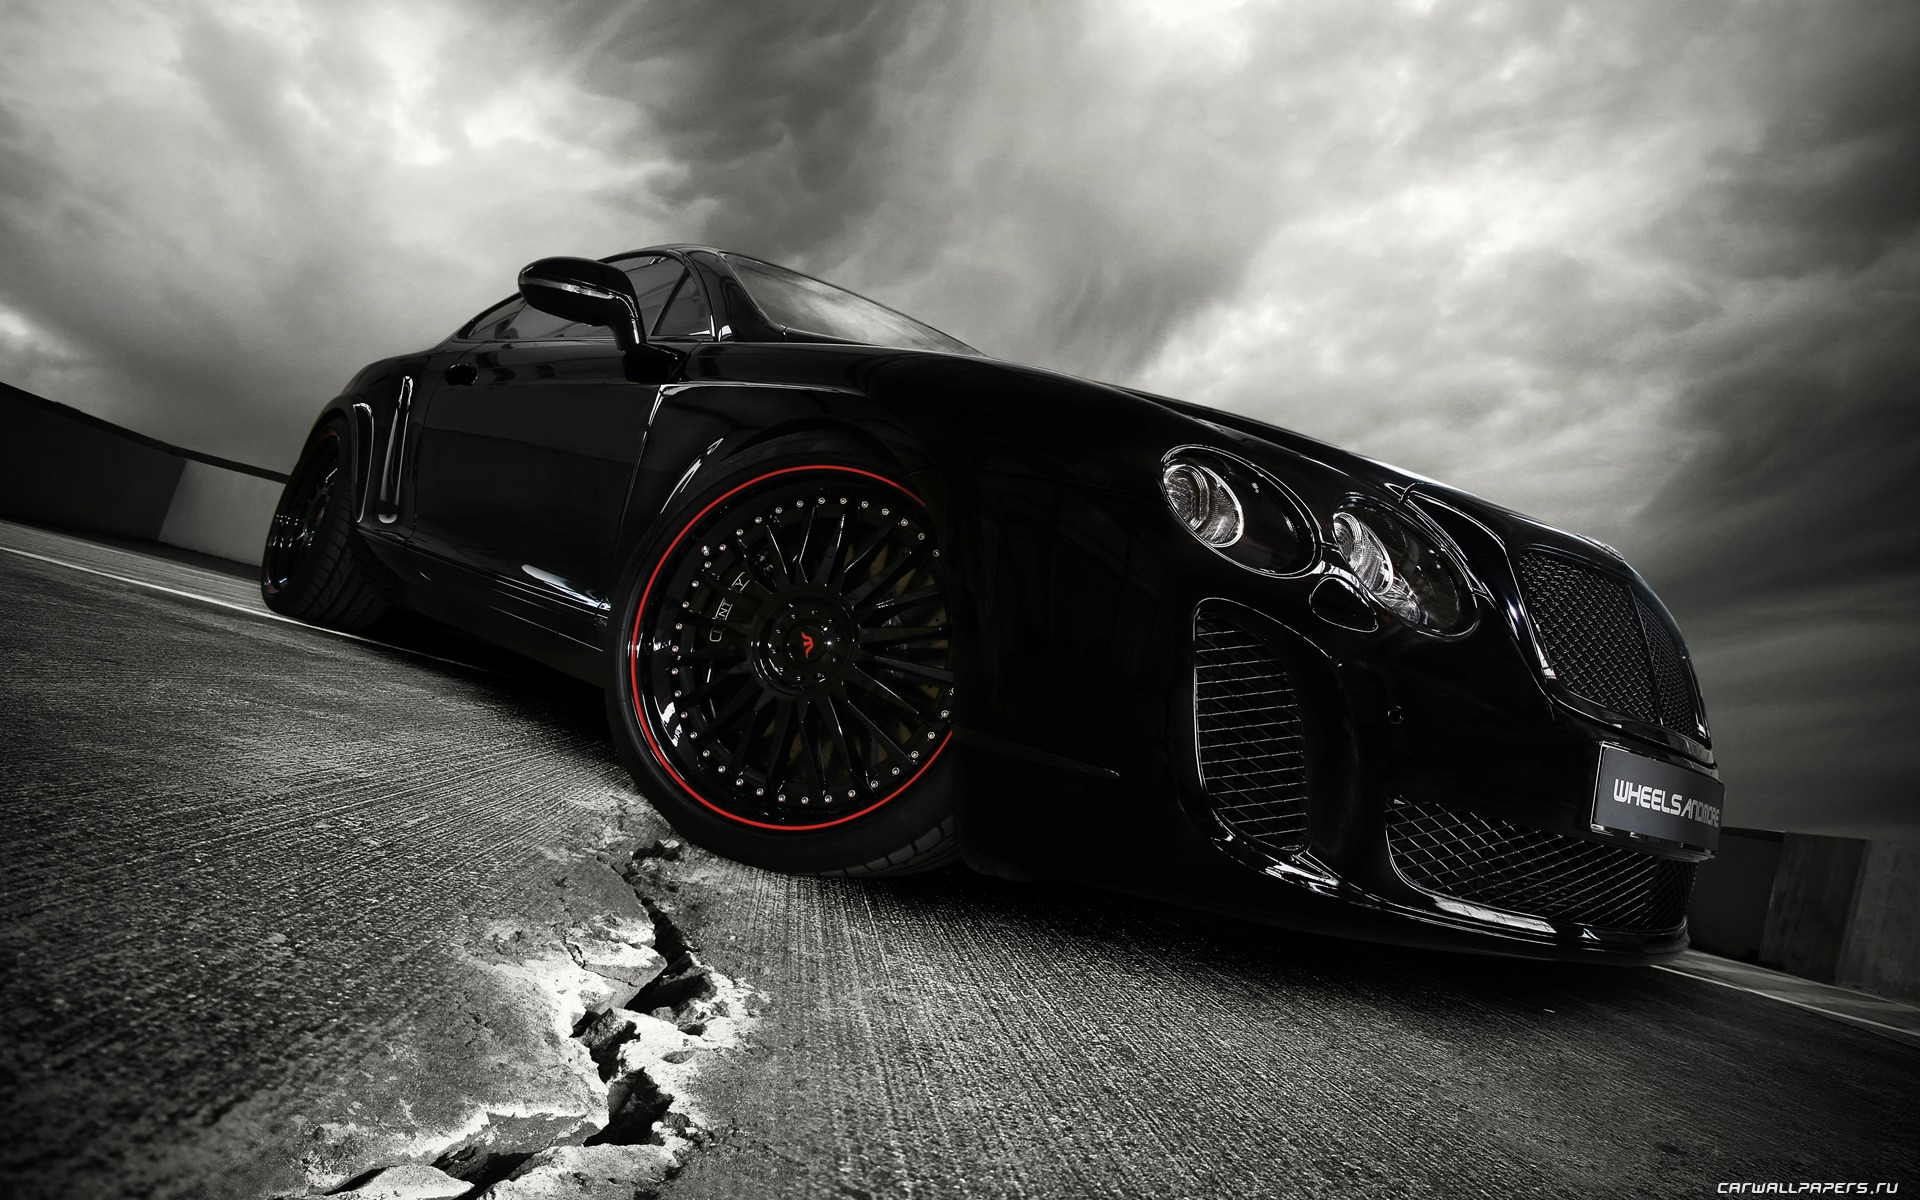 Wheelsandmore Bentley Continental Ultrasports 702 - 2010 HD обои #2 - 1920x1200